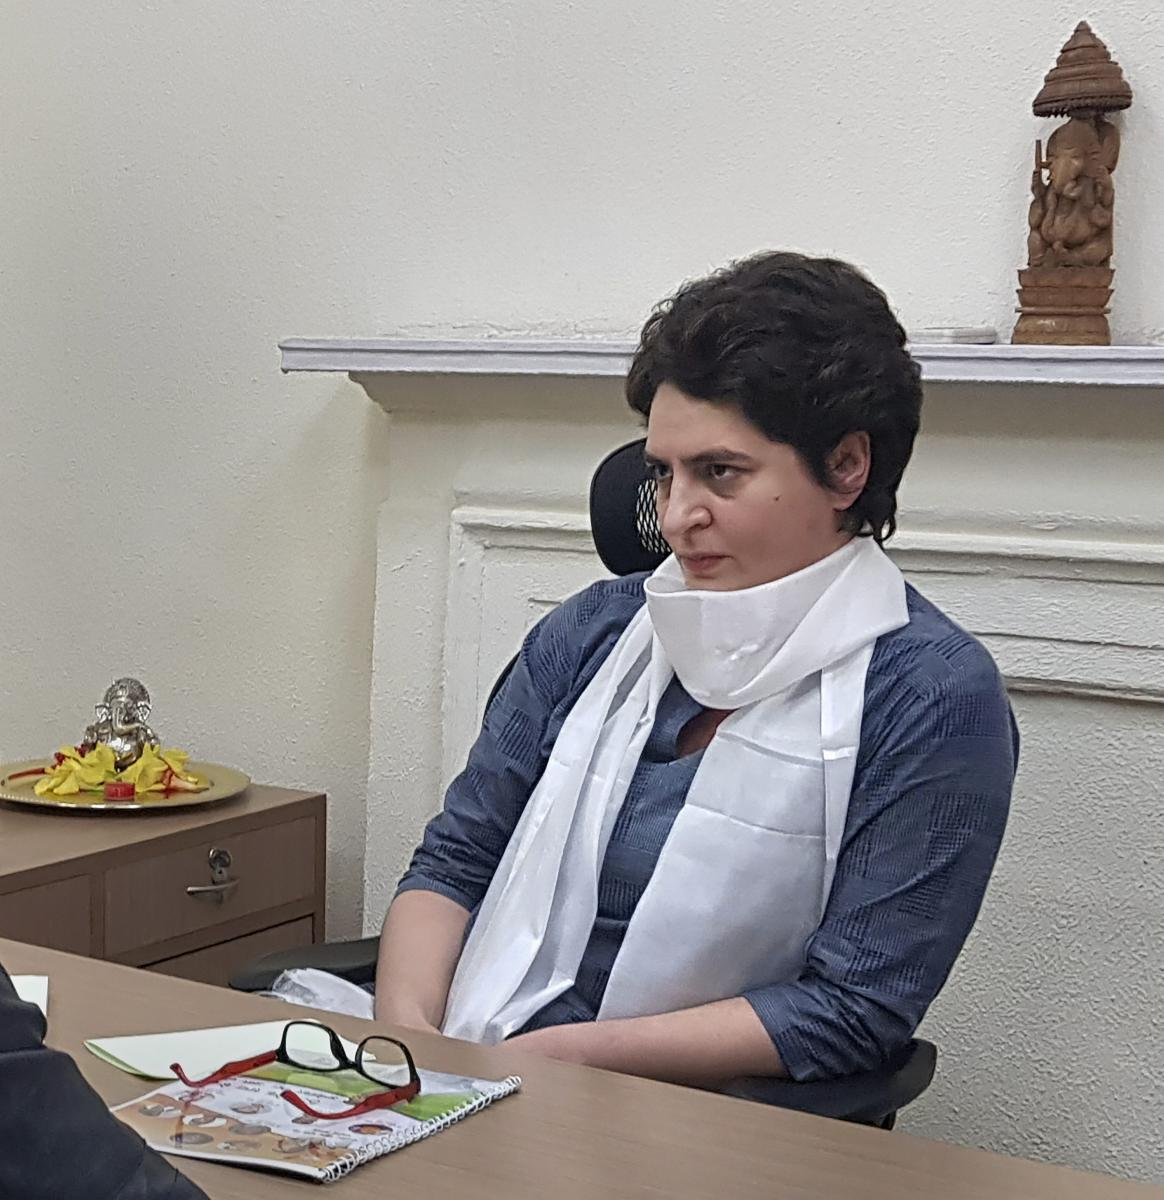 Priyanka Gandhi was appointed a Congress general secretary last month, a move that ended years of speculation over her induction into the party.